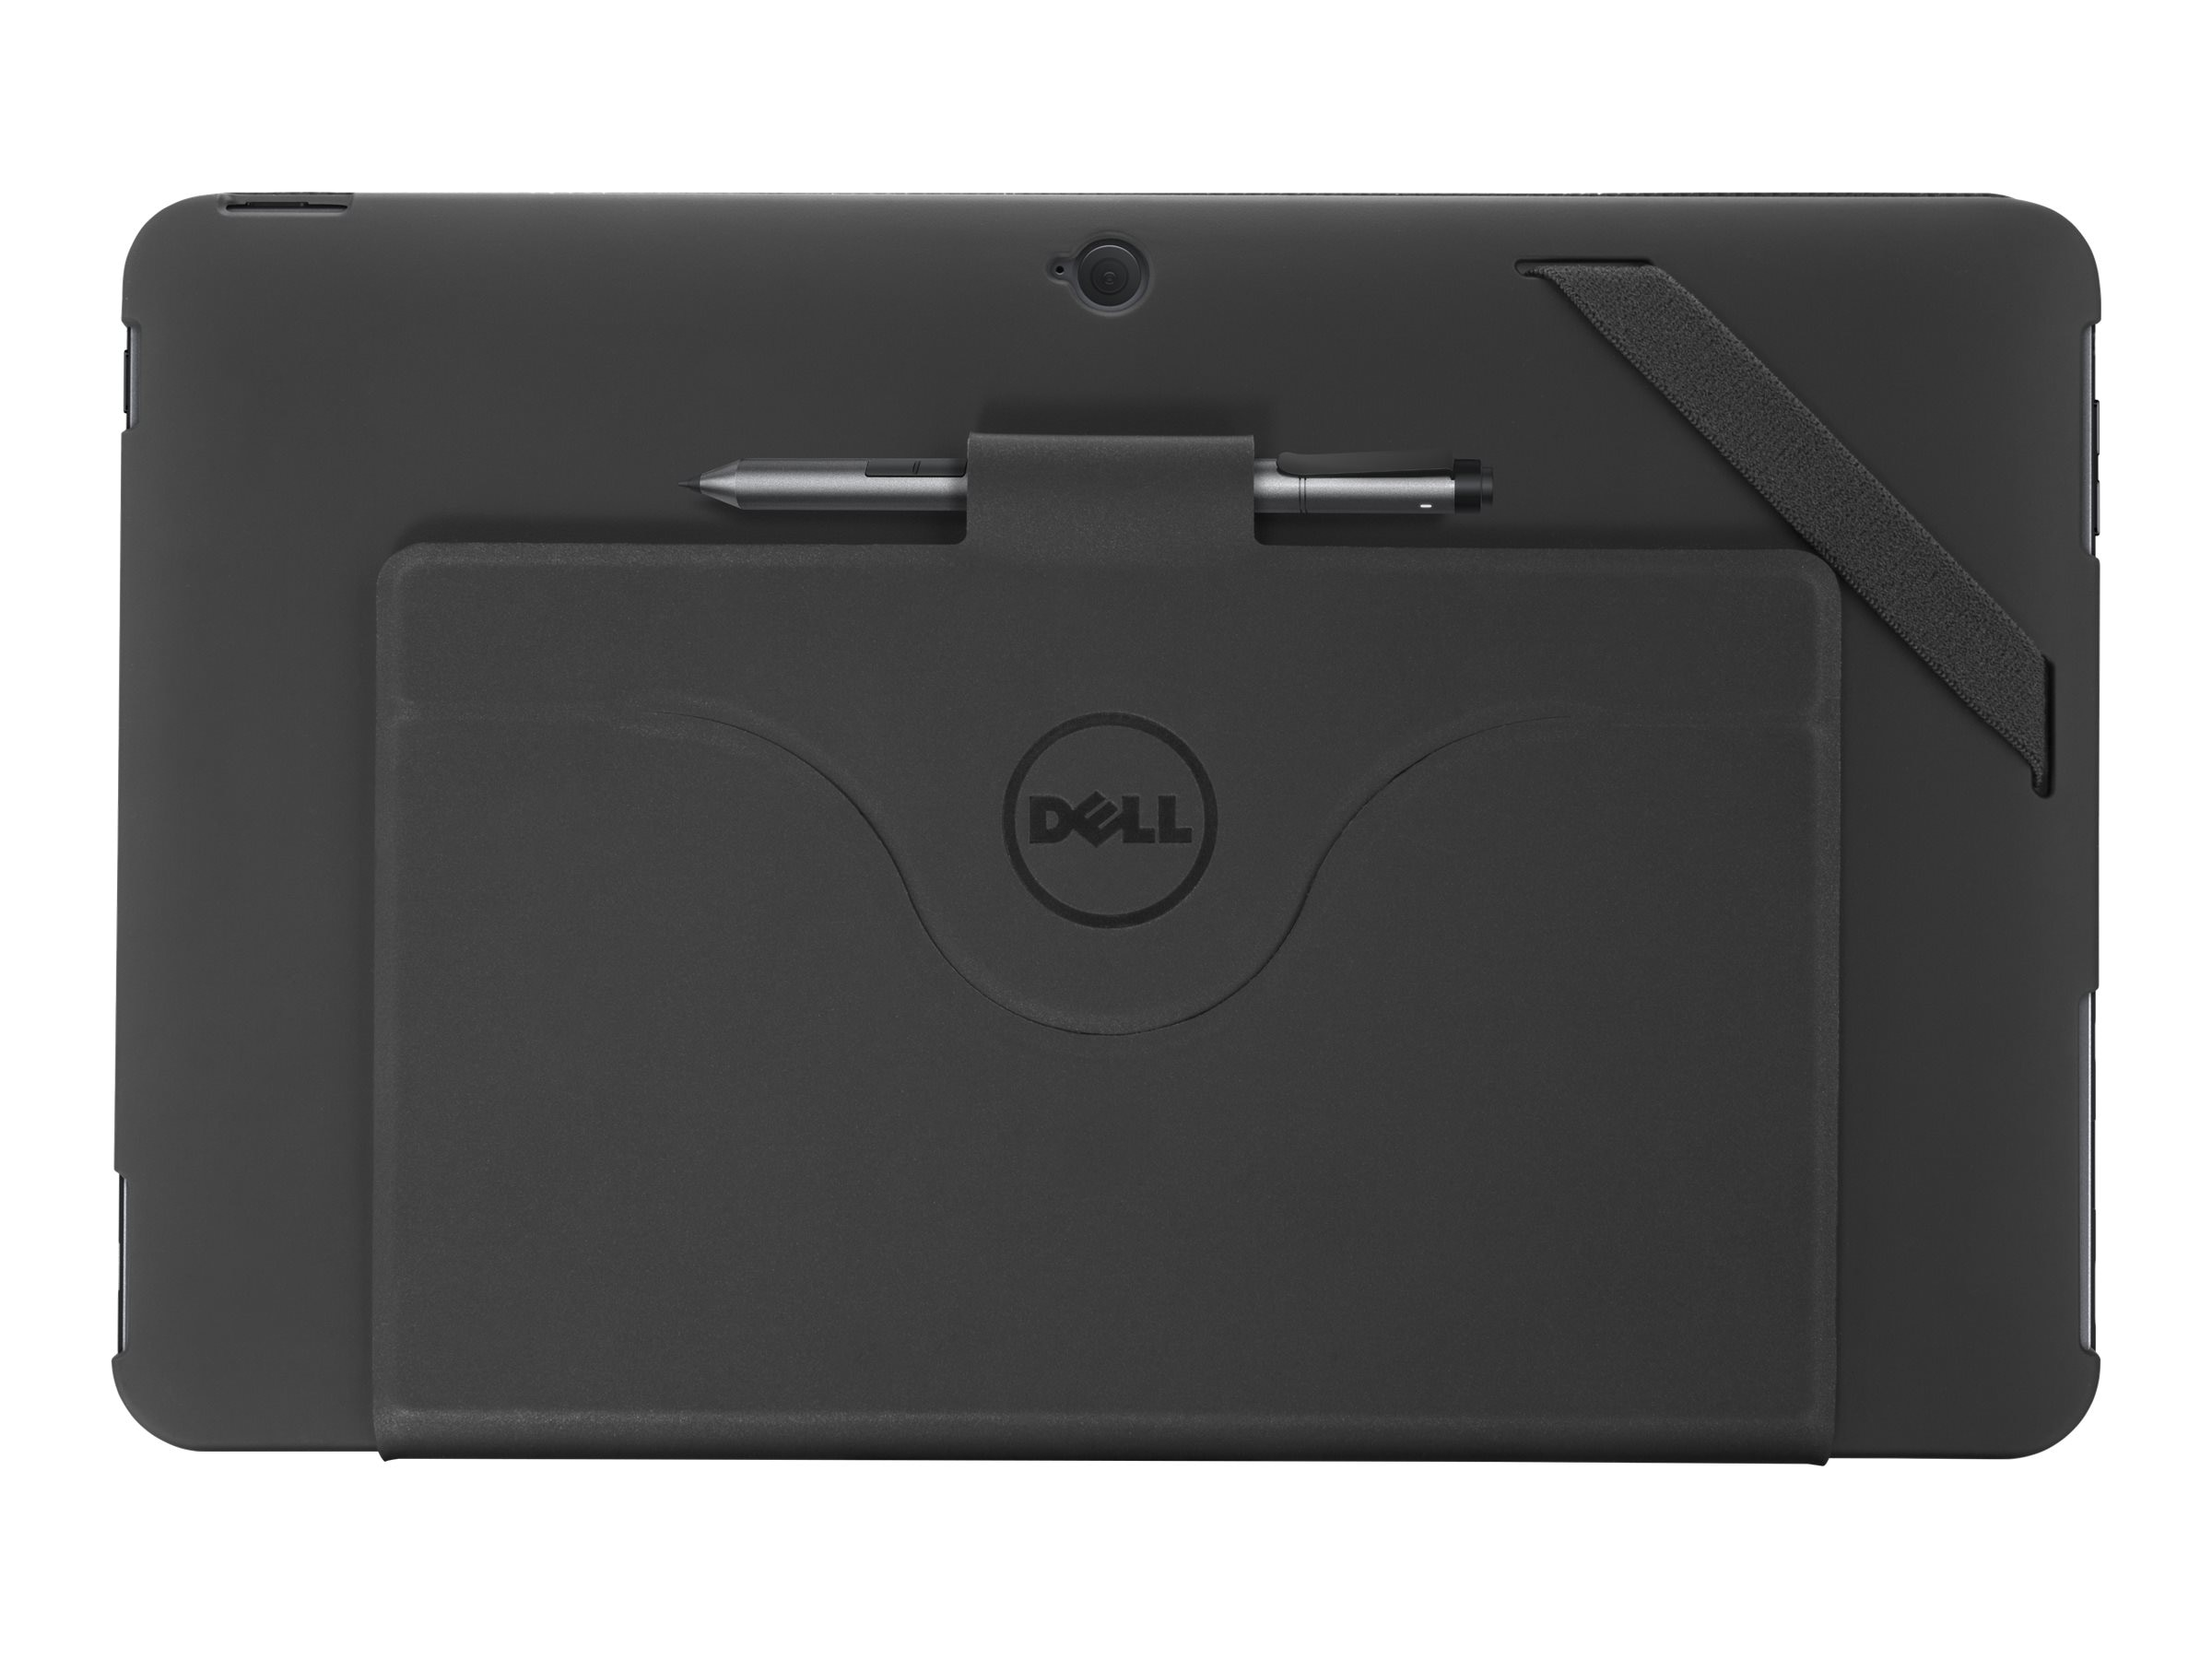 Dell XP51X Image 5